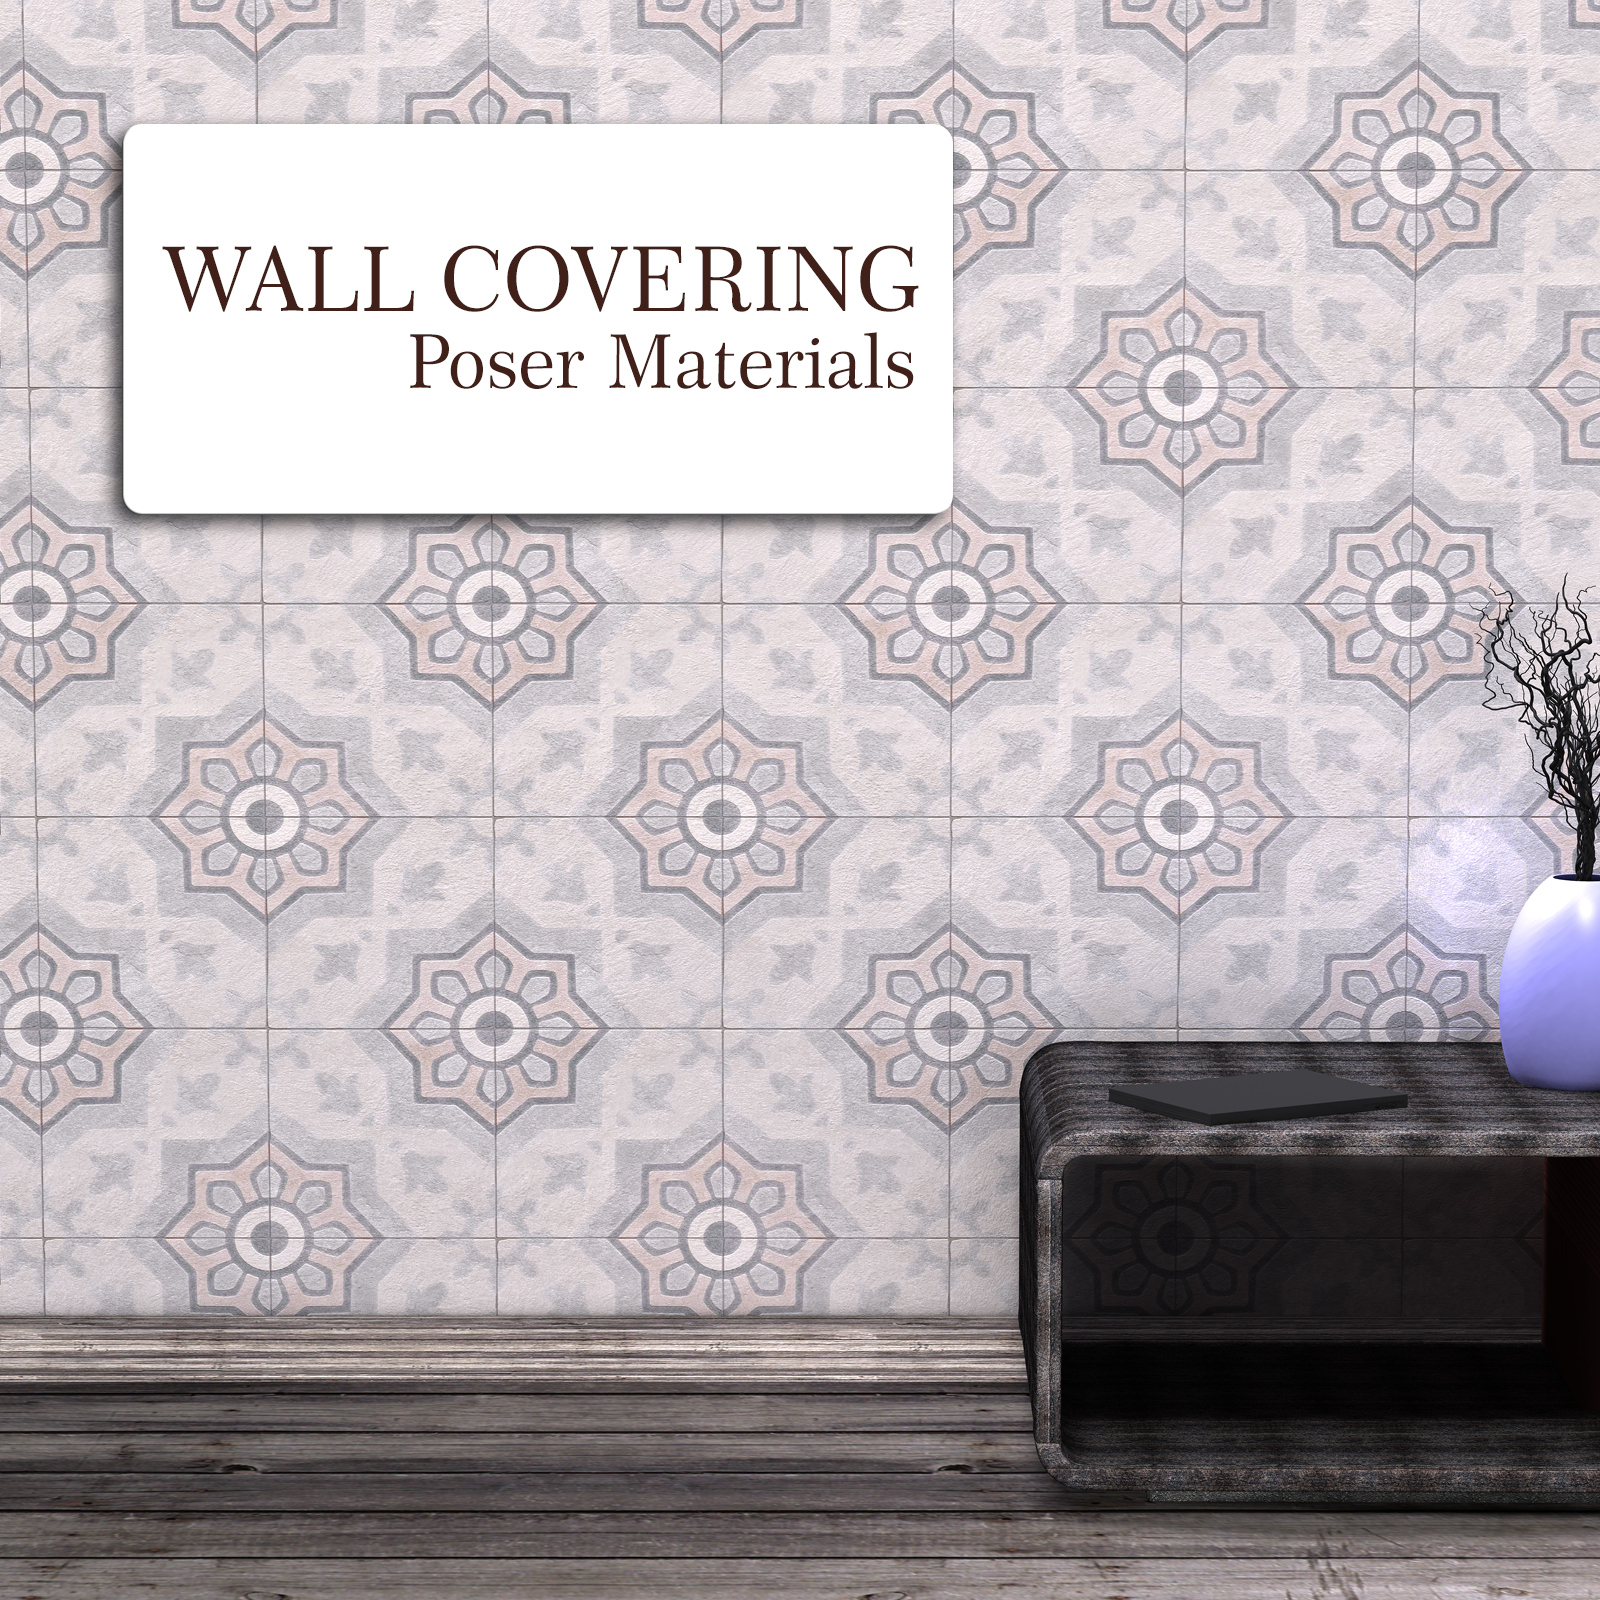 Wall Covering :: Poser Materials